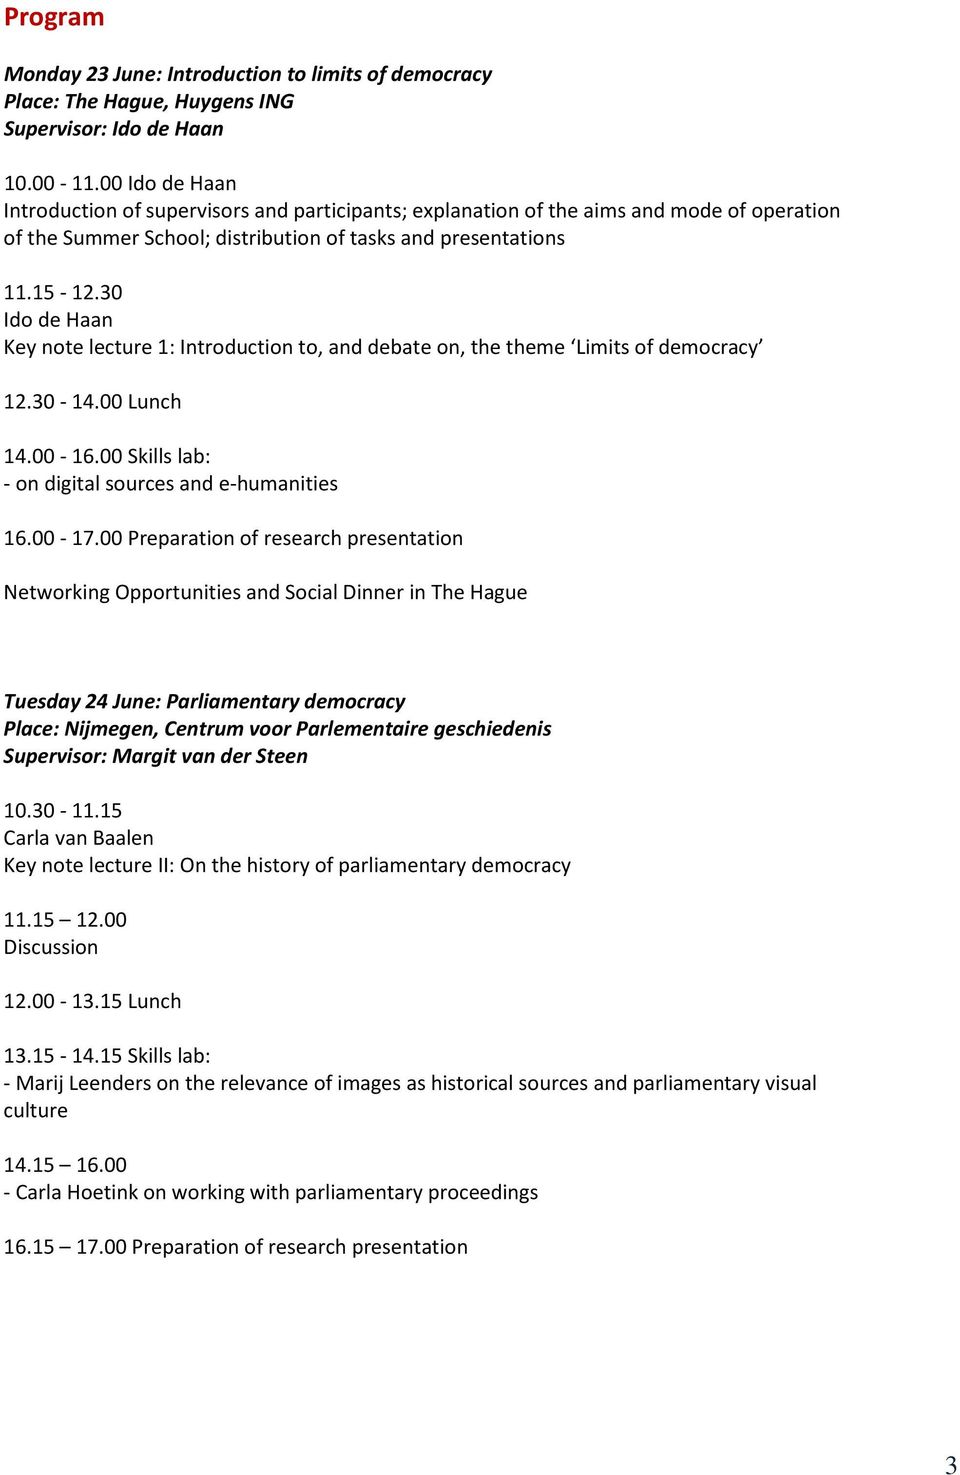 30 Ido de Haan Key note lecture 1: Introduction to, and debate on, the theme Limits of democracy 12.30-14.00 Lunch 14.00-16.00 Skills lab: - on digital sources and e-humanities 16.00-17.